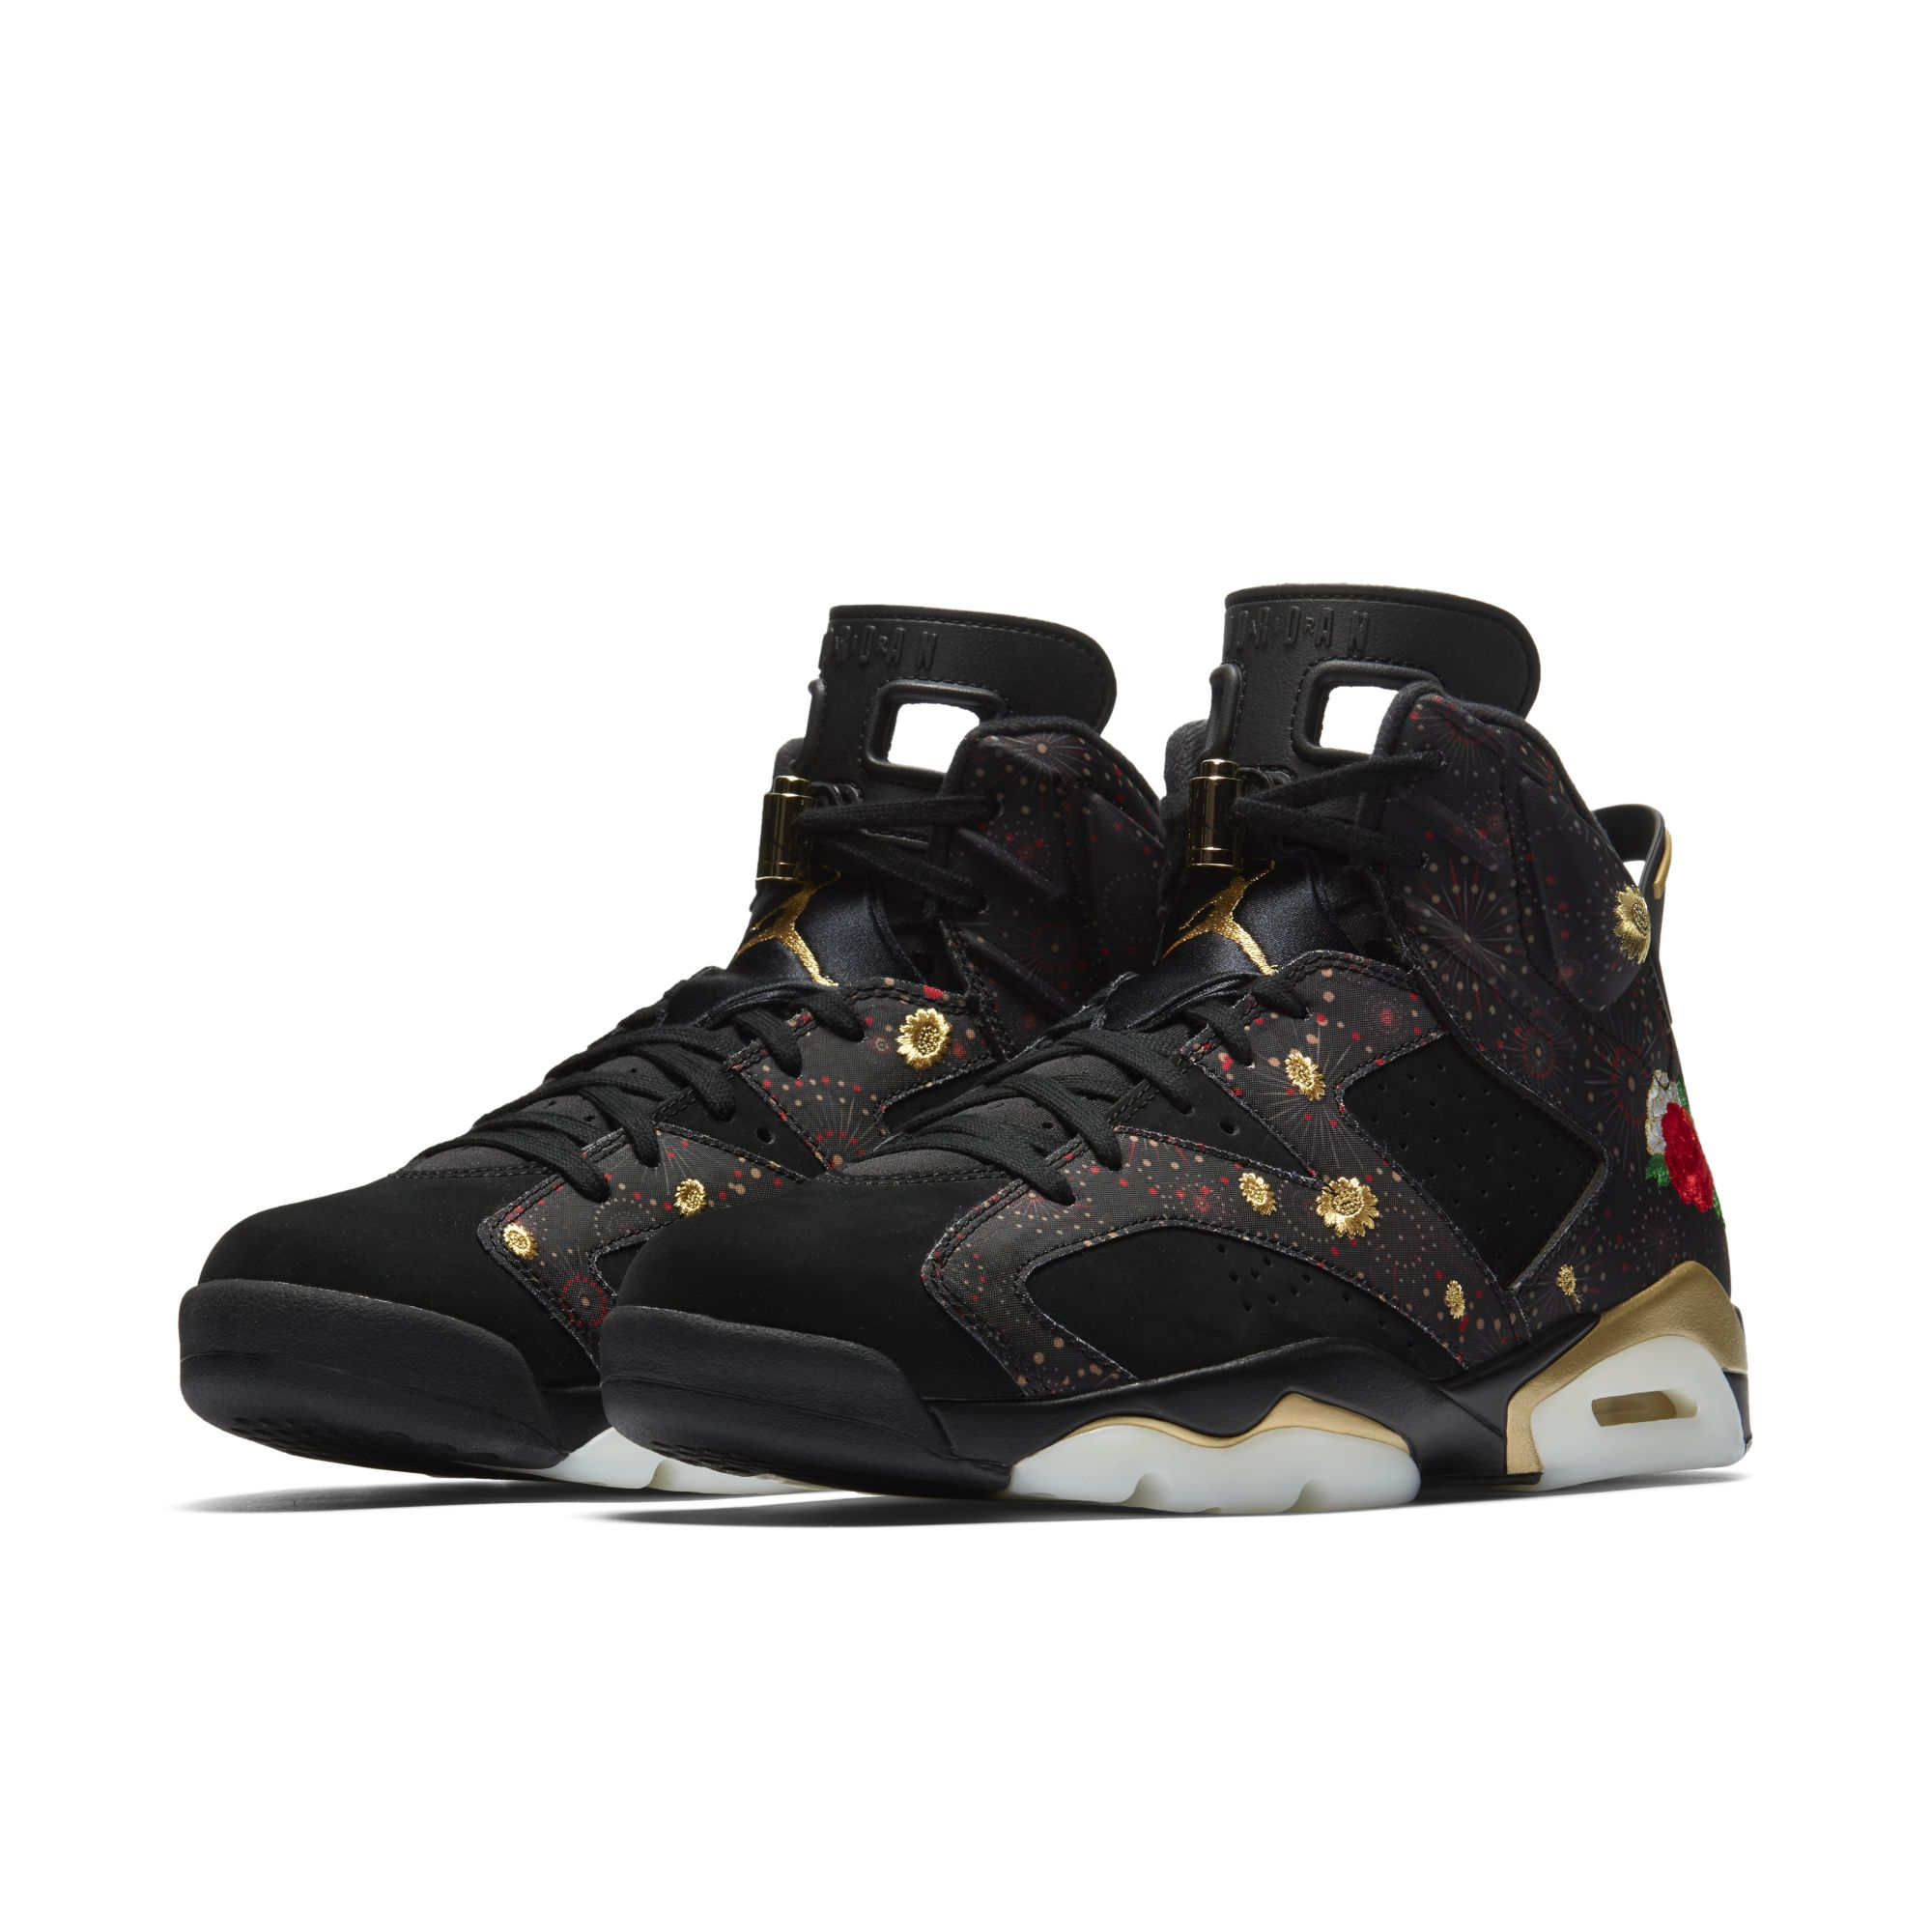 finest selection 40b93 455dc Here's an Official Look at the Air Jordan 6 'CNY' - WearTesters